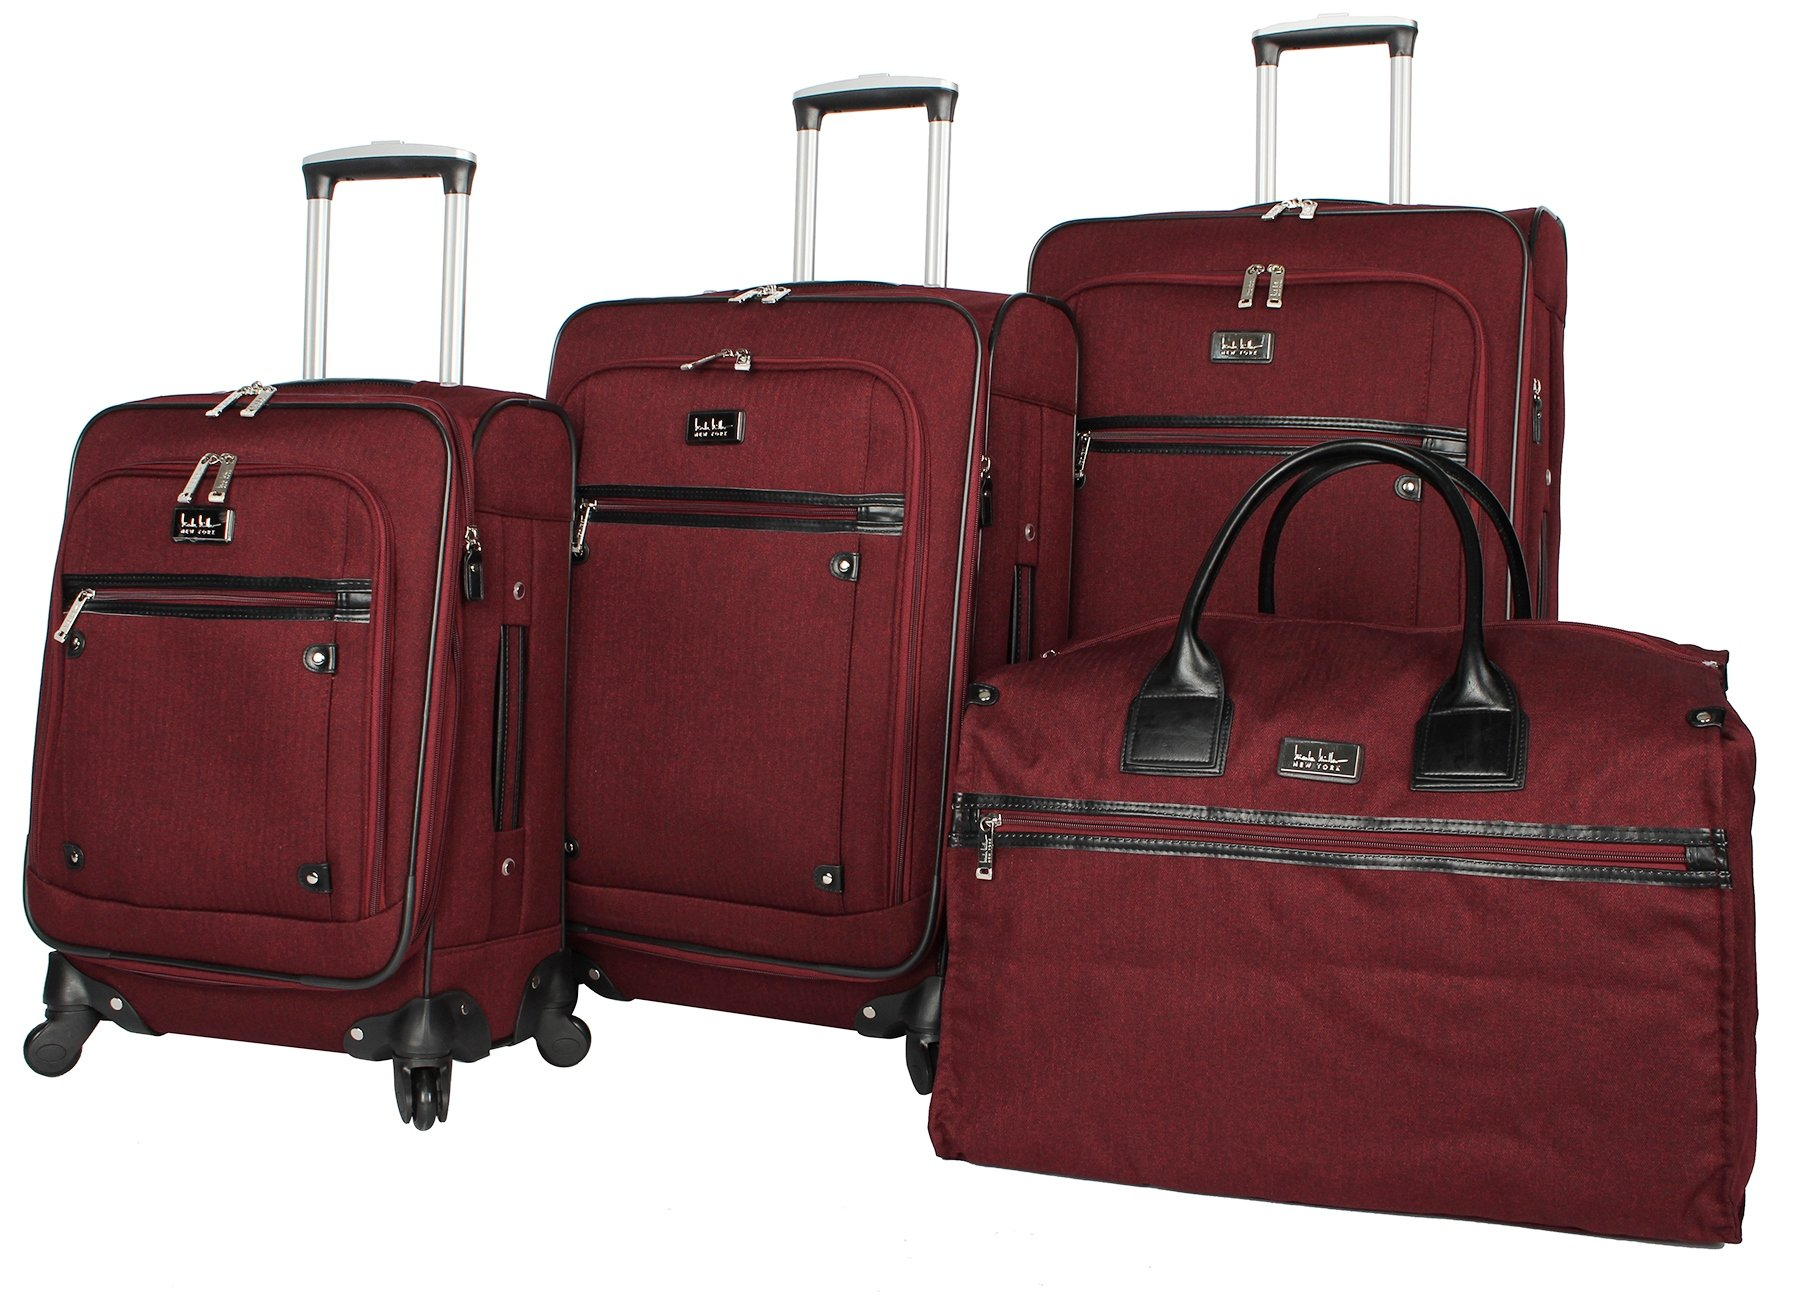 Nicole Miller New York Taylor Set of 4: Box Bag, 20'', 24'', 28'' Expandable Spinner Luggages (Burgundy)